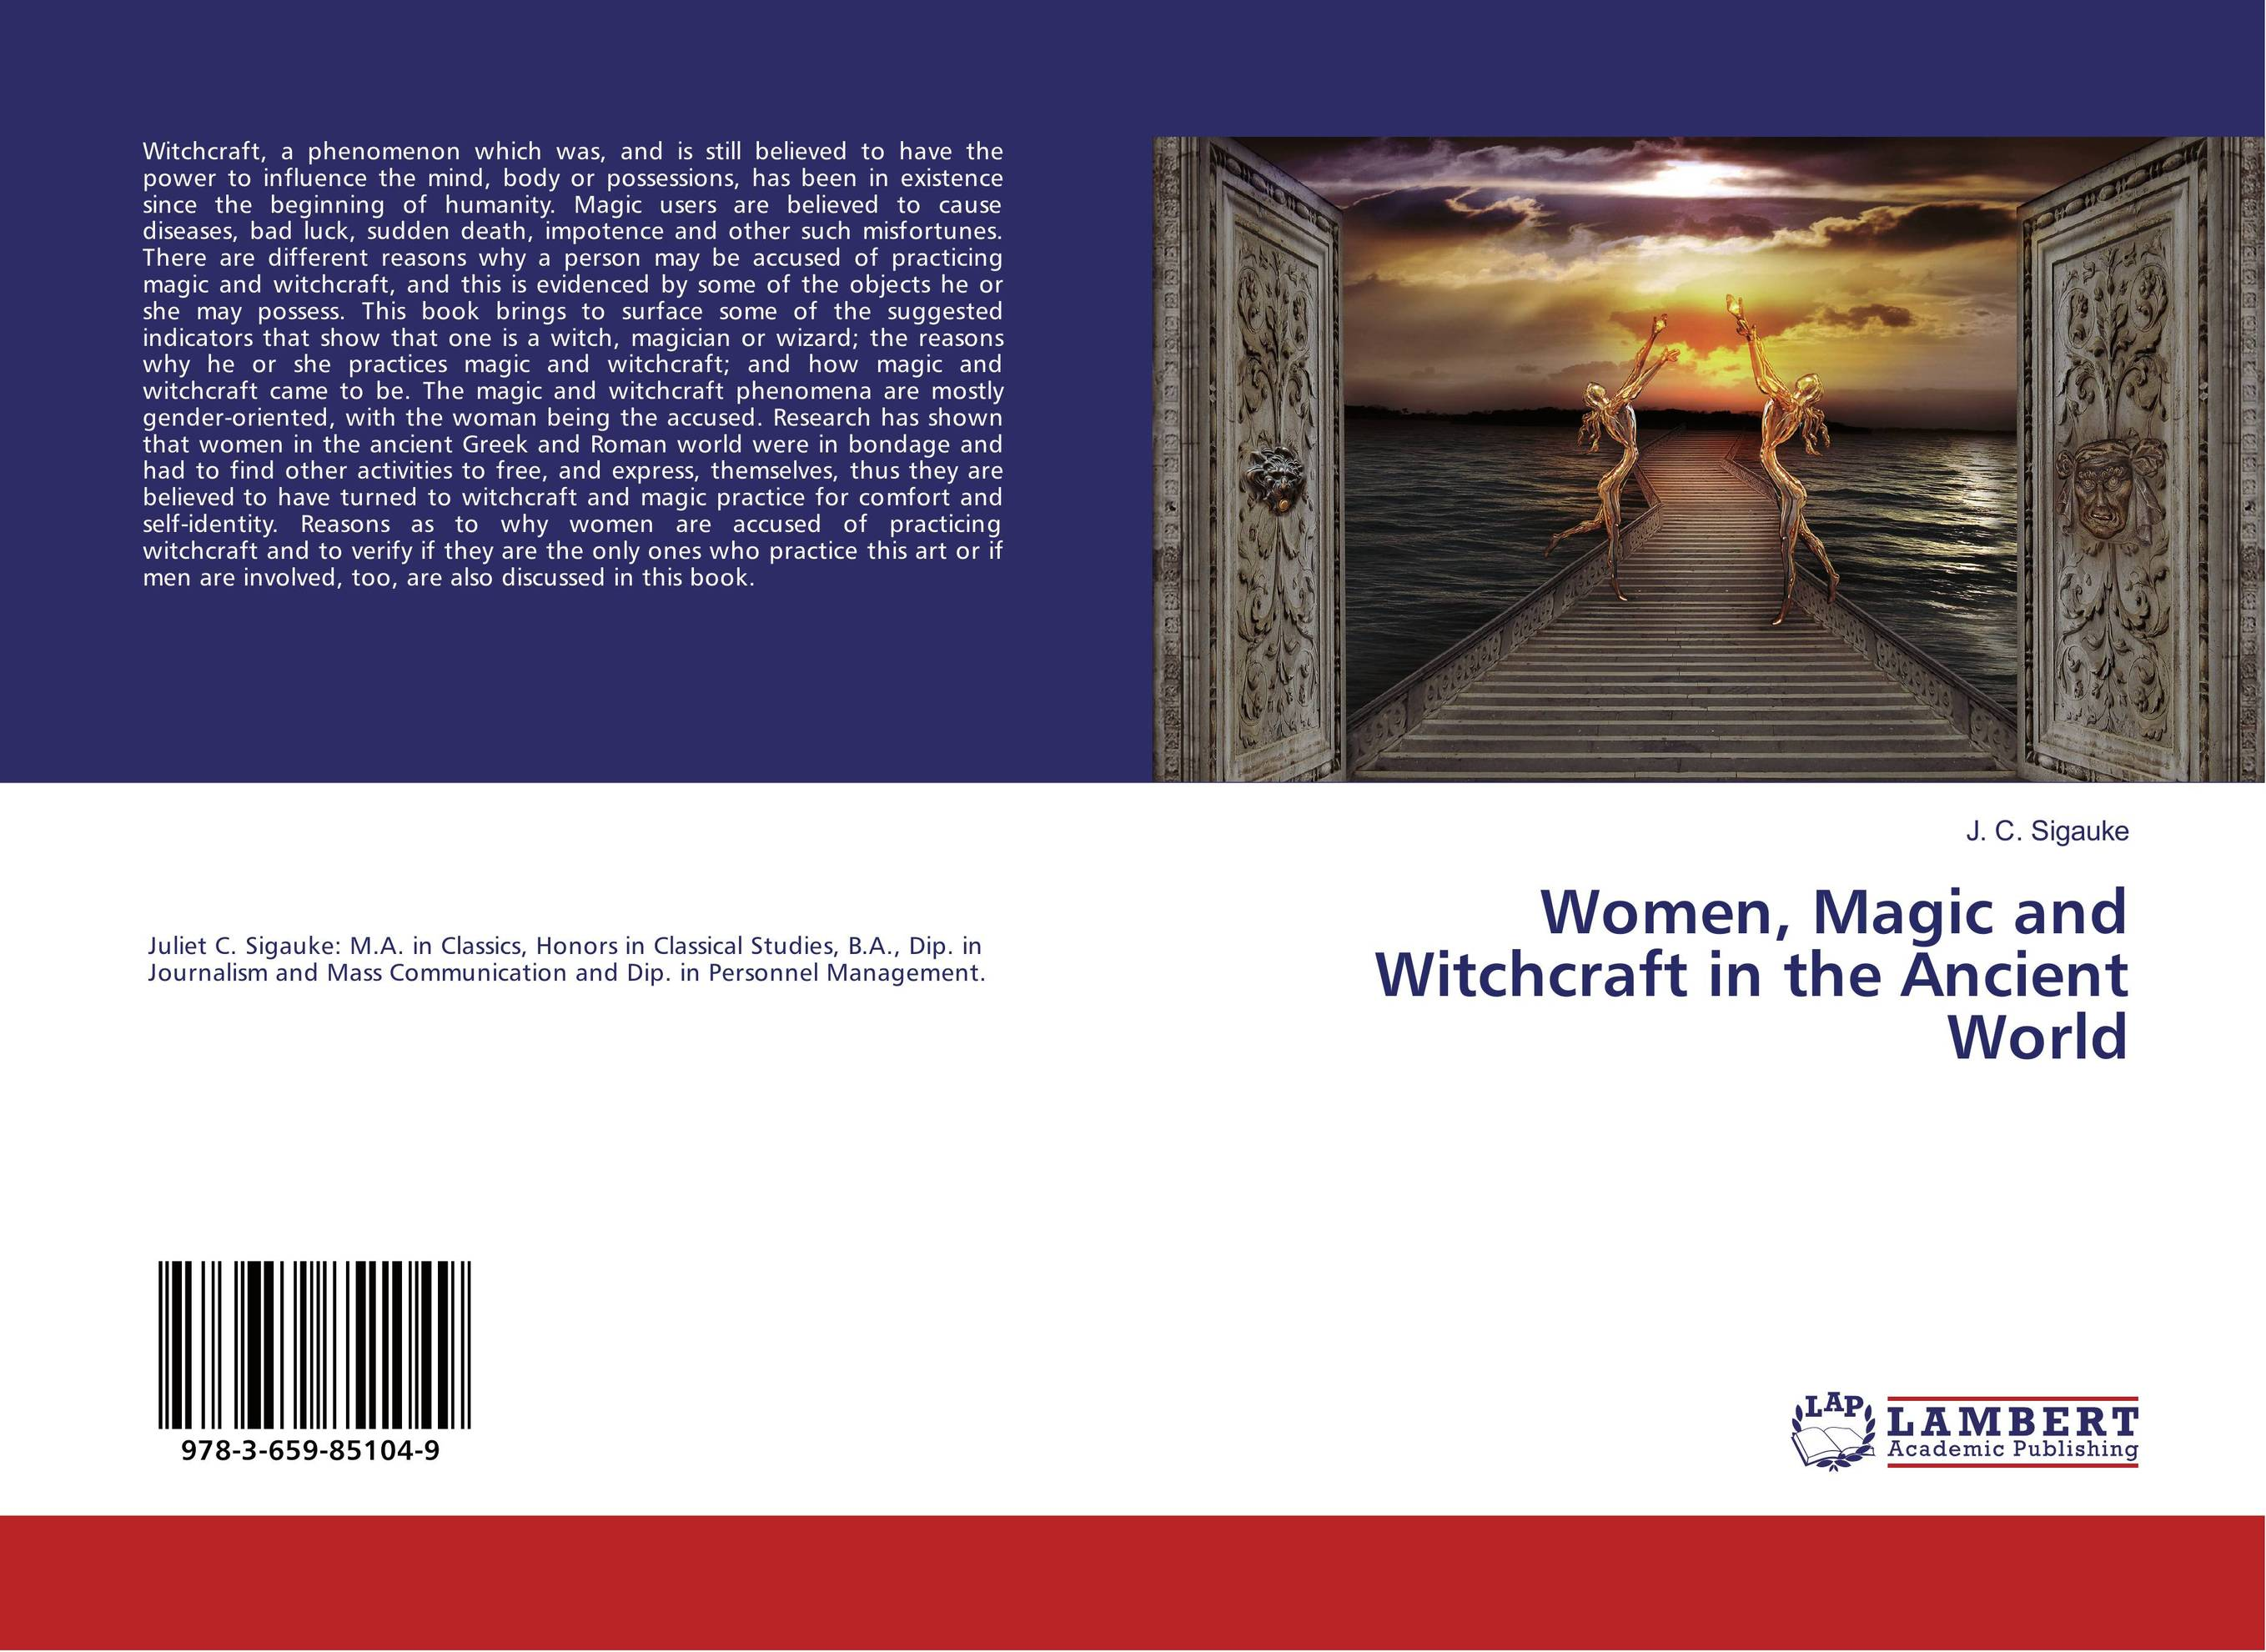 Women, Magic and Witchcraft in the Ancient World seeing things as they are